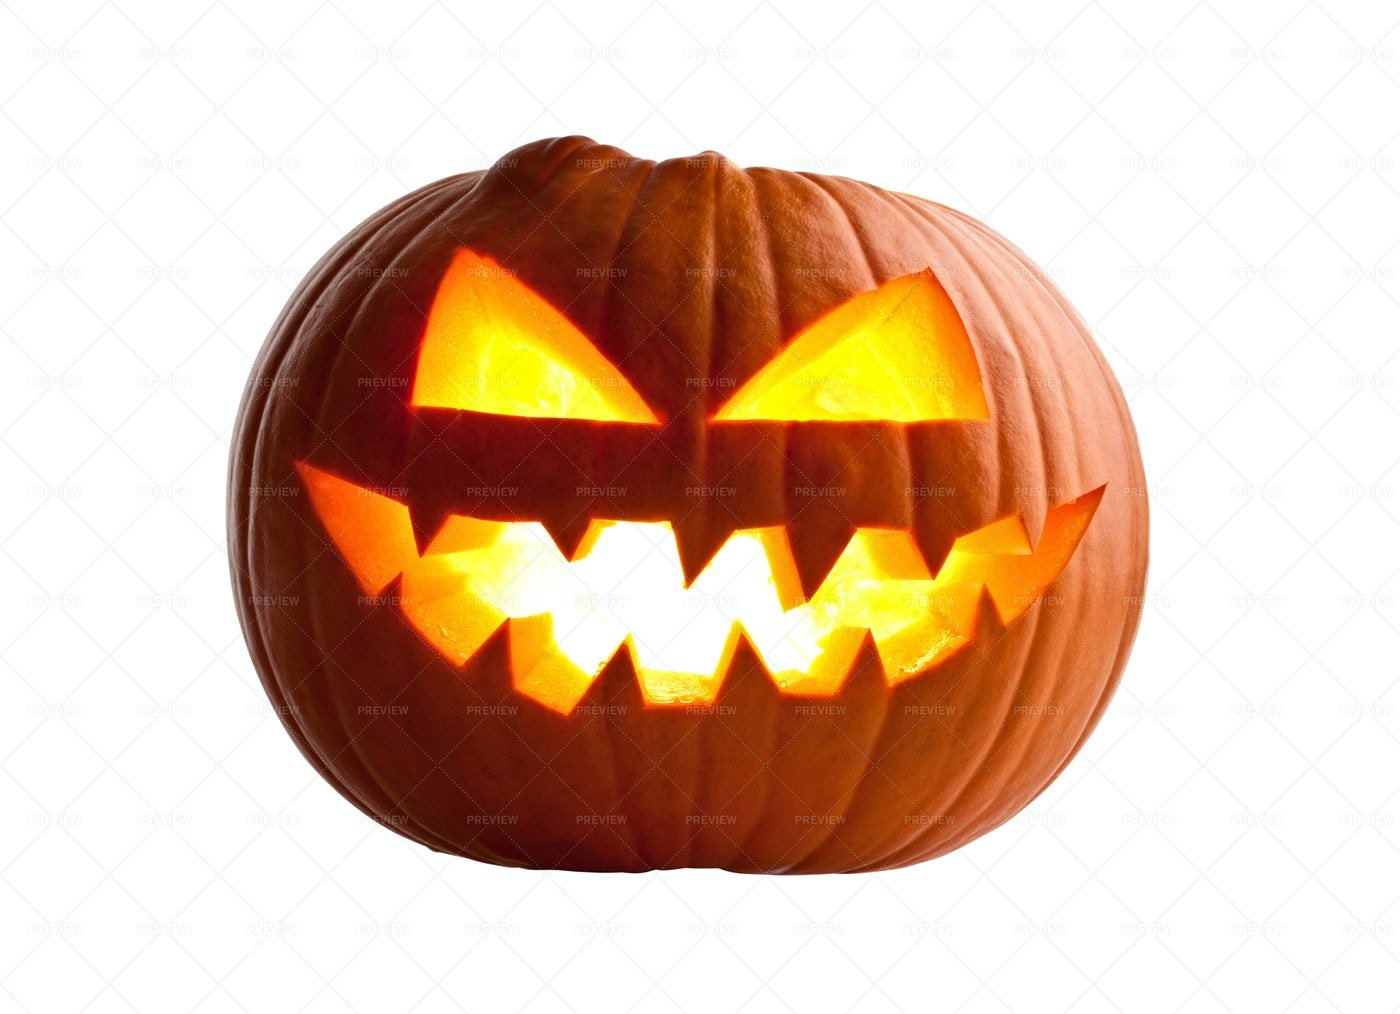 Carved Halloween Pumpkin On White: Stock Photos